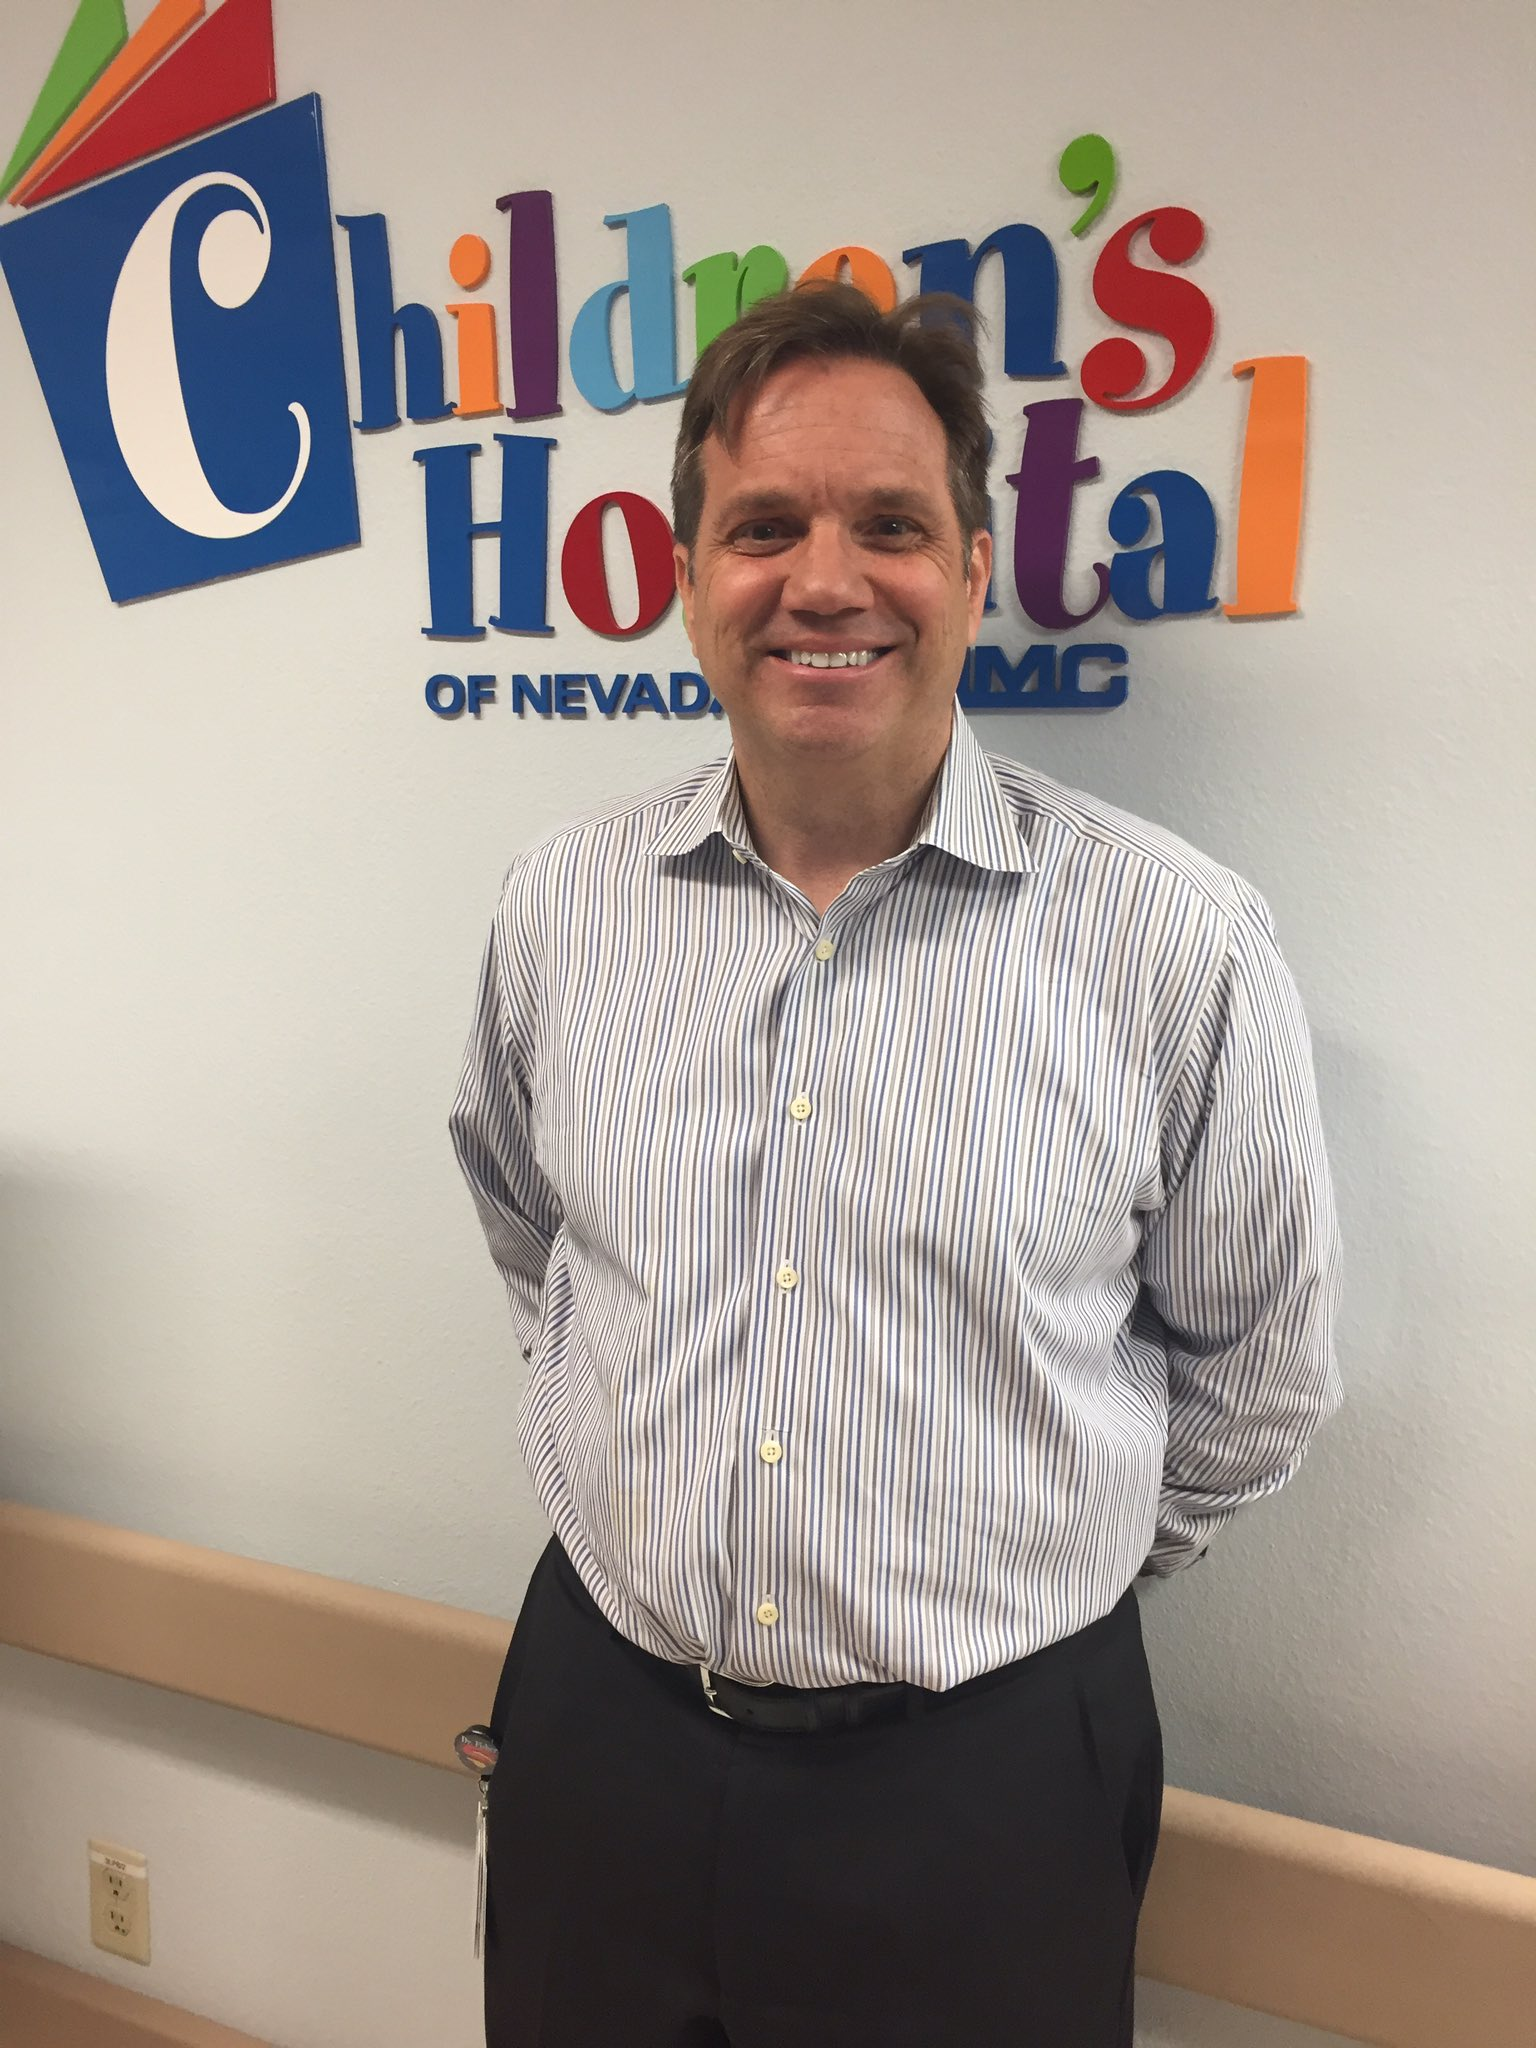 Dr. Jay Fisher, Medical Director of the Pediatric Emergency Department at Children's Hospital of Nevada at UMC. 6/20/17 (Chloe Beardsley | KSNV)